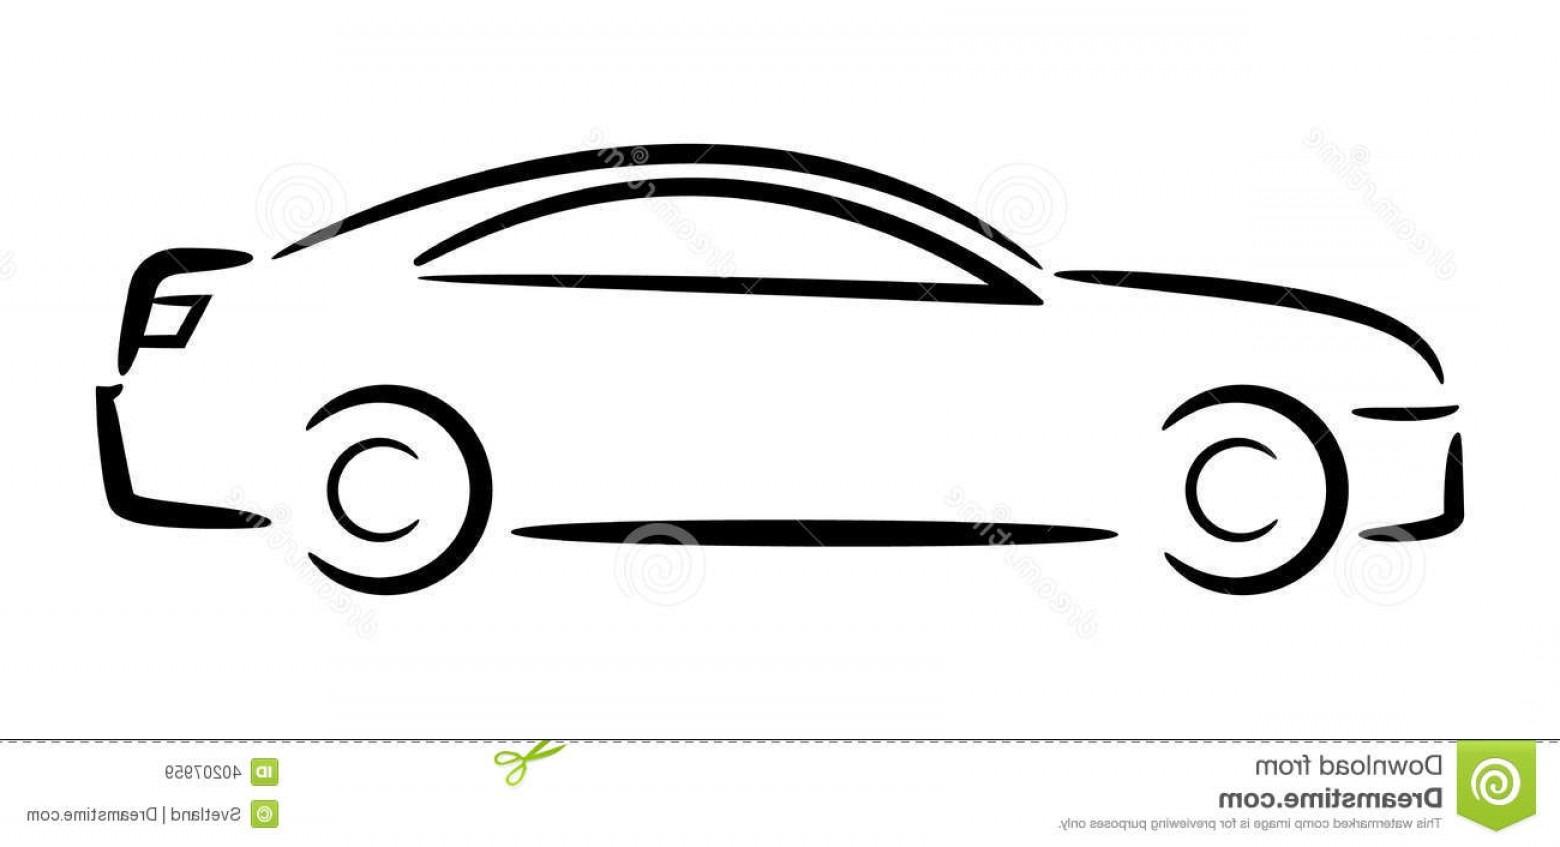 Car clipart file jpg black and white download Automobile Outline Clip Art Car Outline Side View Download Royalty ... jpg black and white download